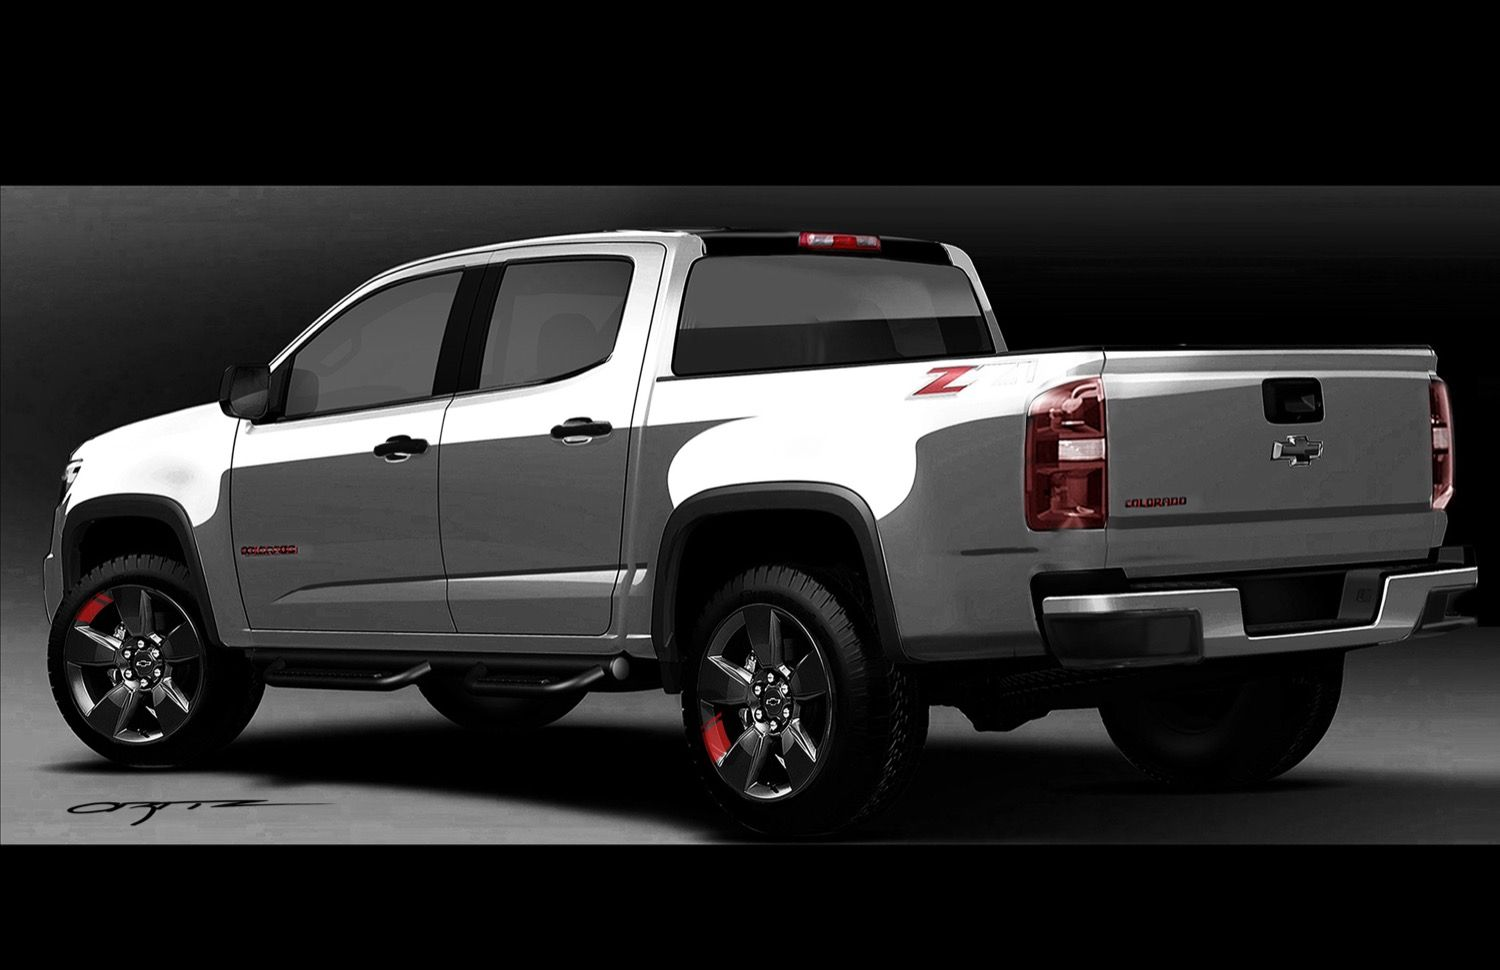 2016 Chevy Colorado Red Line Concept Reveal | GM Authority ...